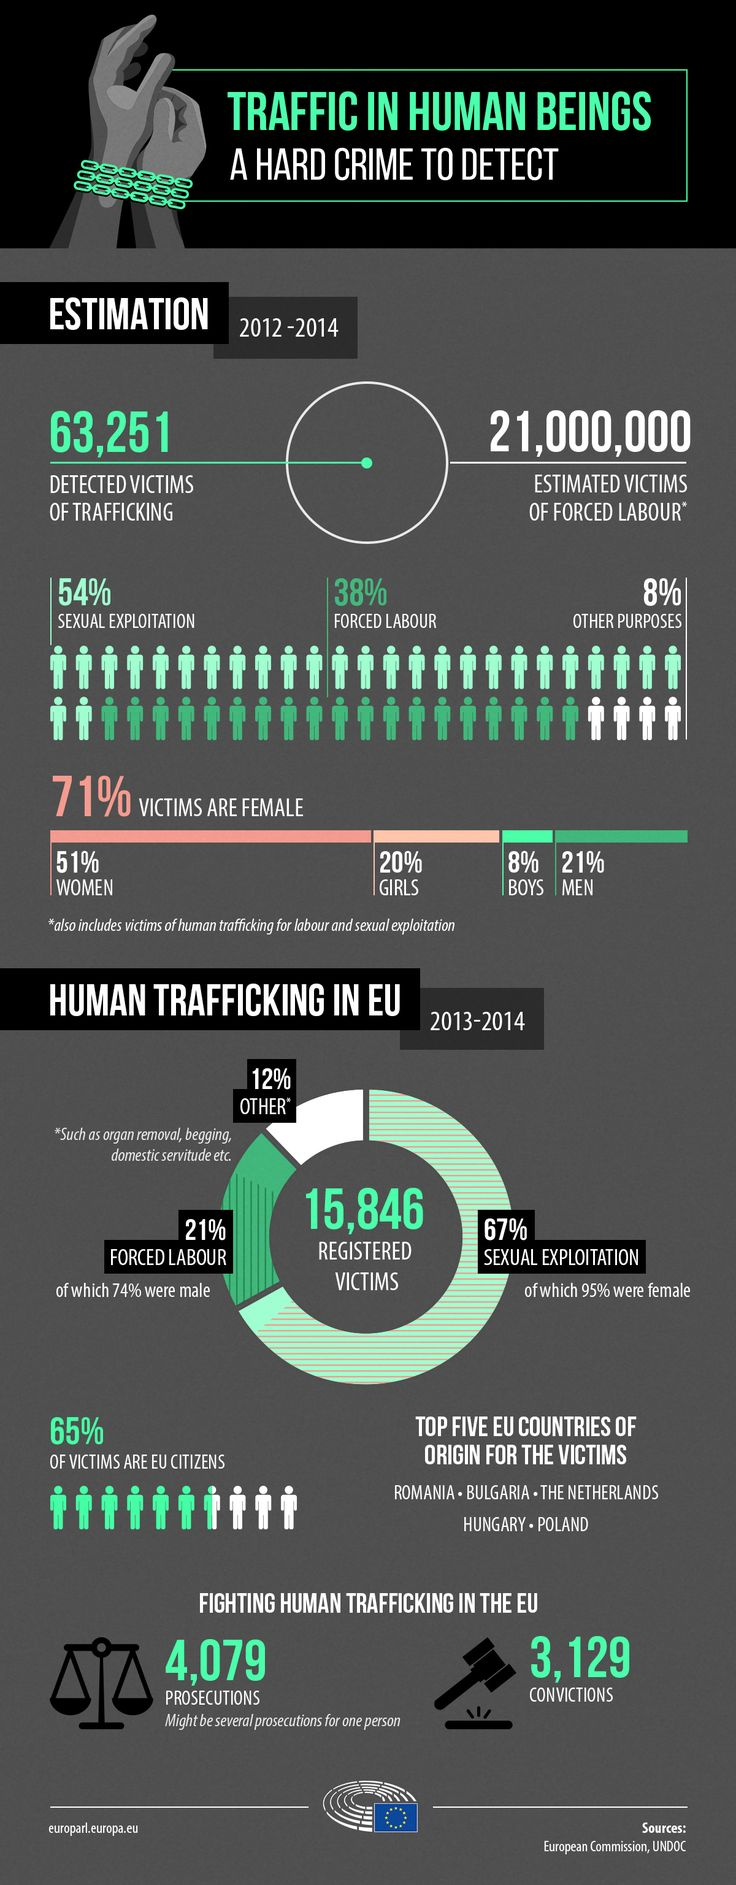 Human trafficking in the EU on the occasion of the EU's Anti-Trafficking Day #infographic http://bit.ly/2mvUxoF